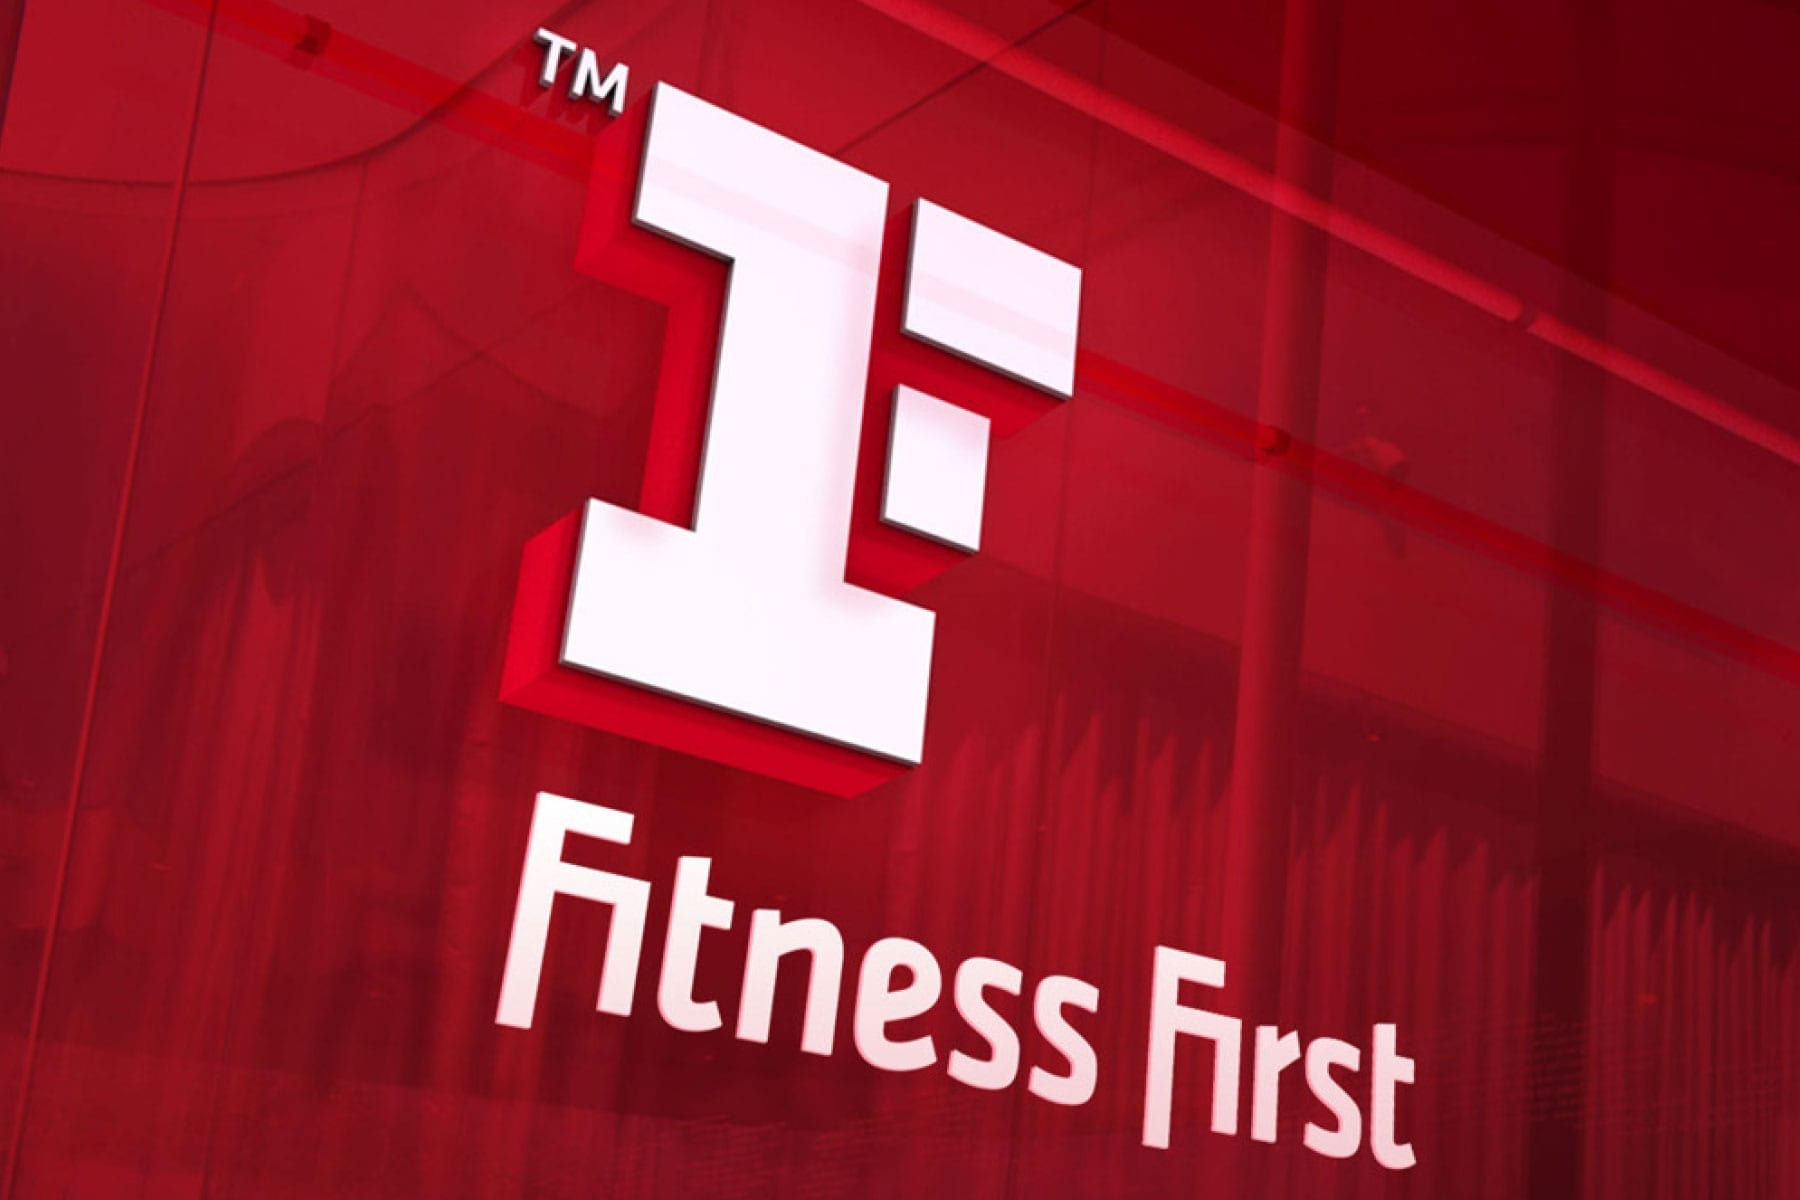 Expansion Fitness First / LifeFit Group